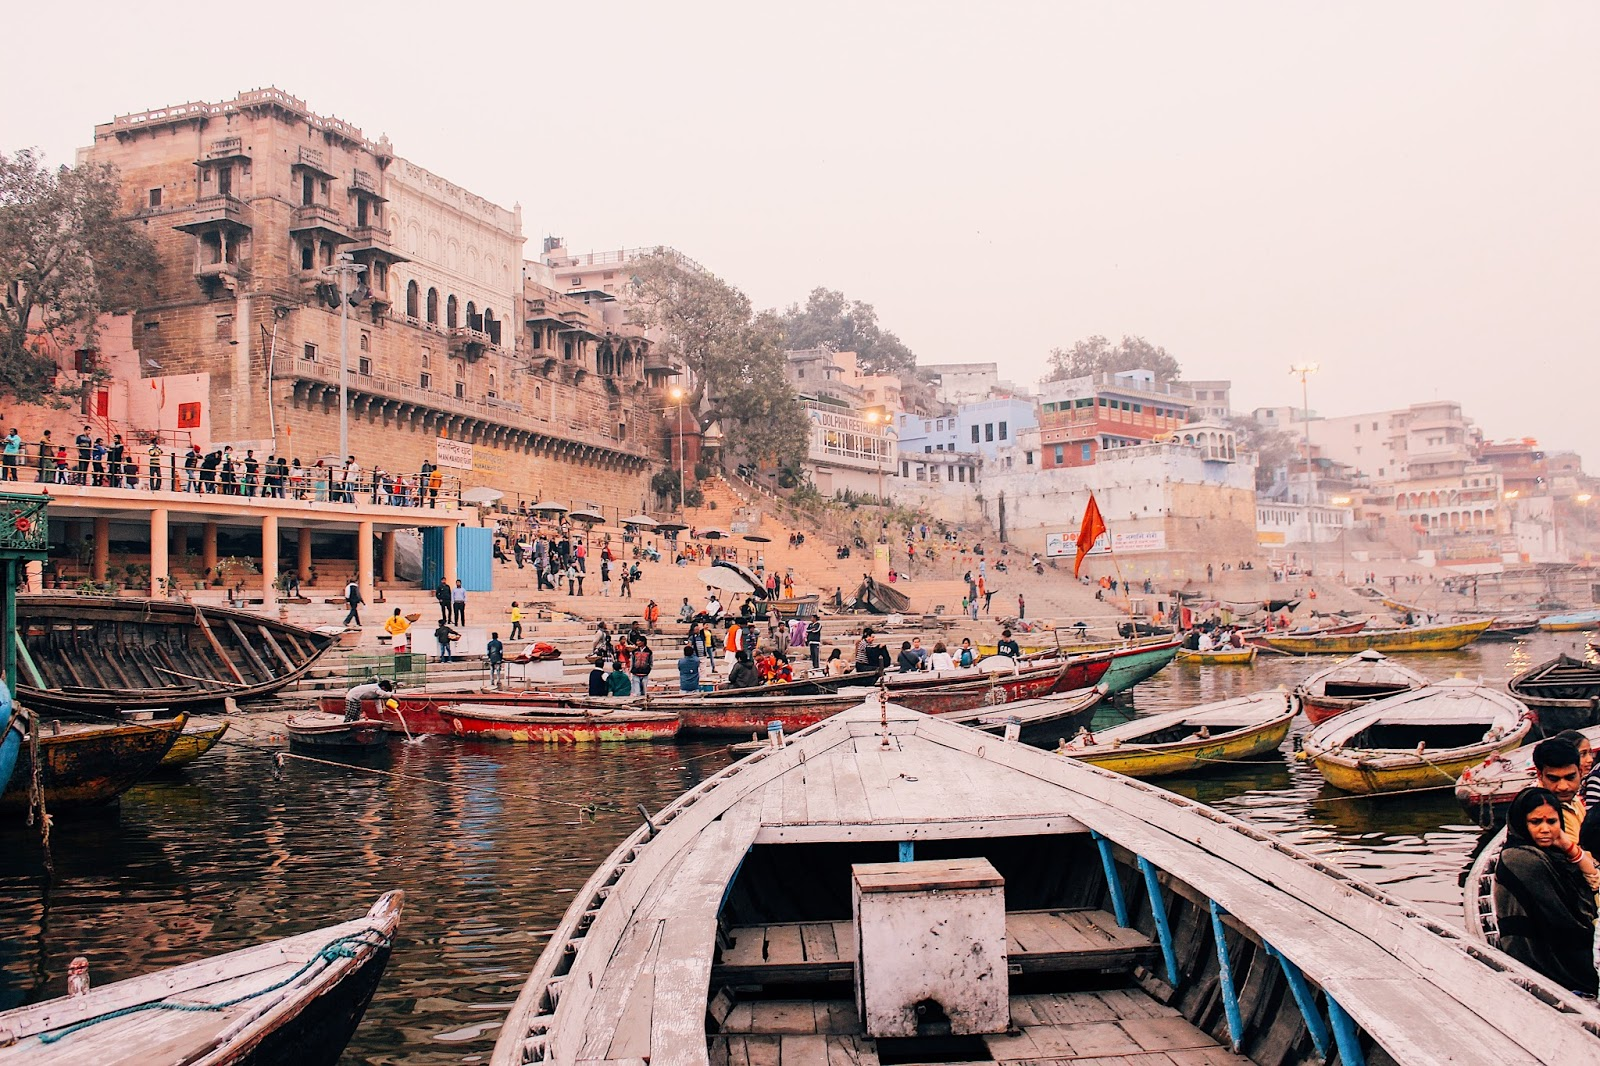 tulsi ghat,varanasi travel guide, vranasai information, tips on varanasi, travel varanasi, spiritual capital of india, city of temples, indian travel blogger, uk blog, benares travel